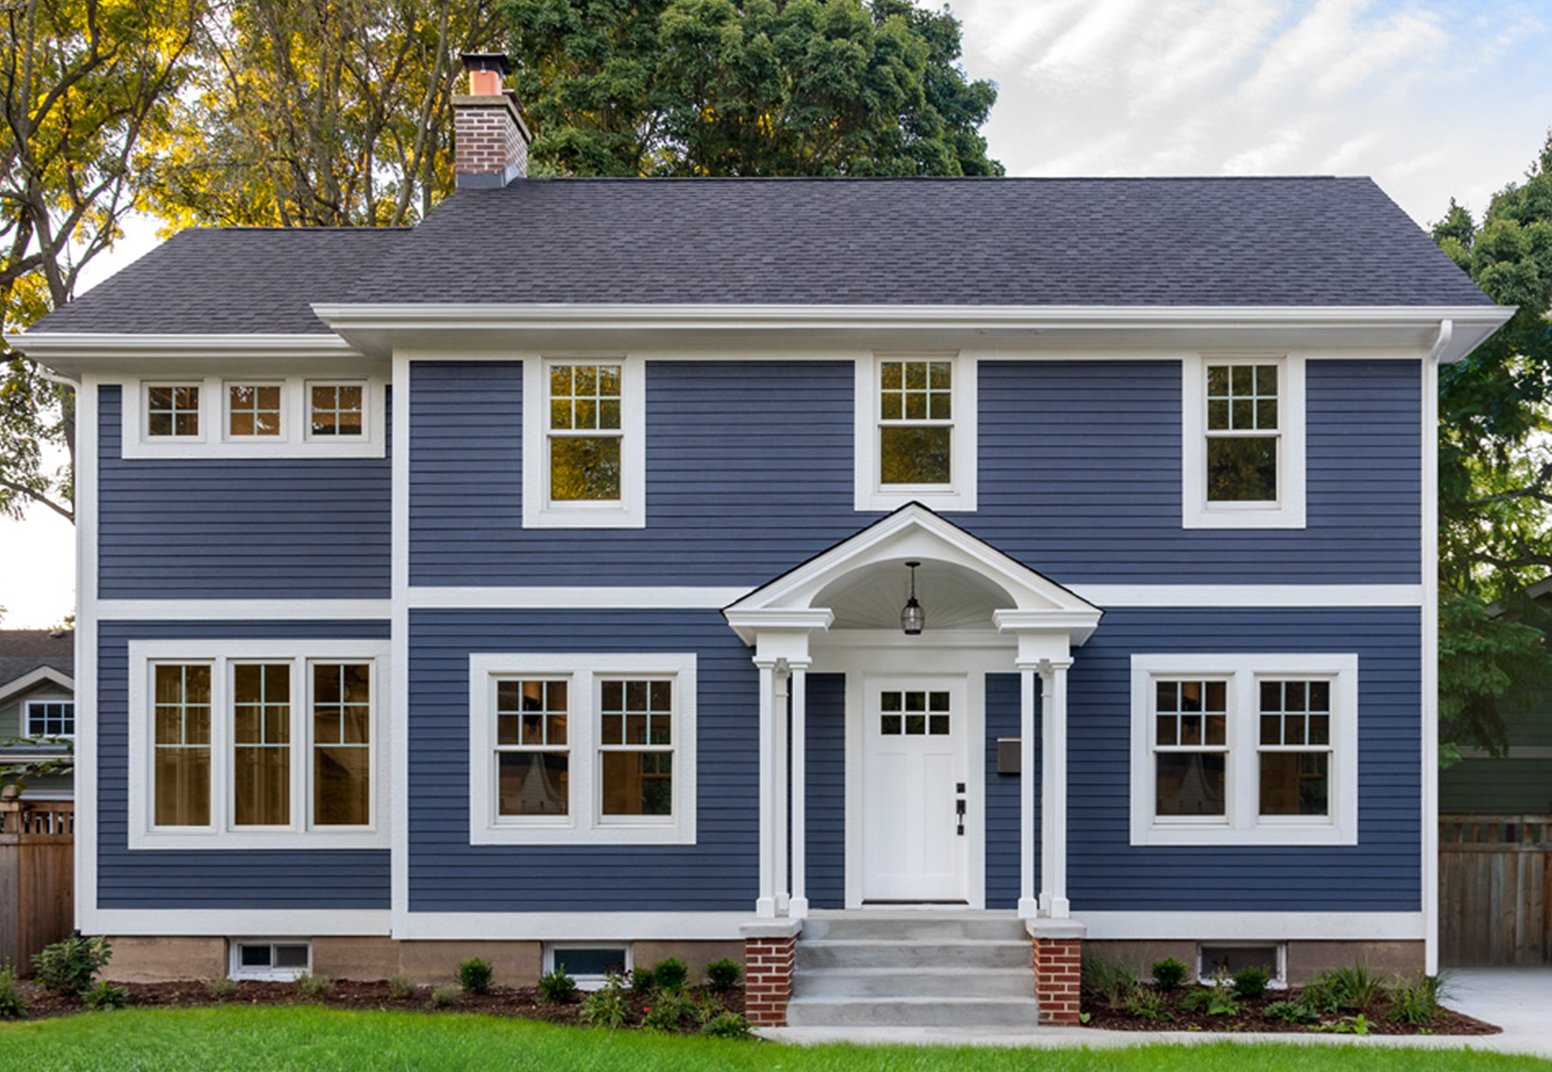 Siding Benefits for Your Home Exterior